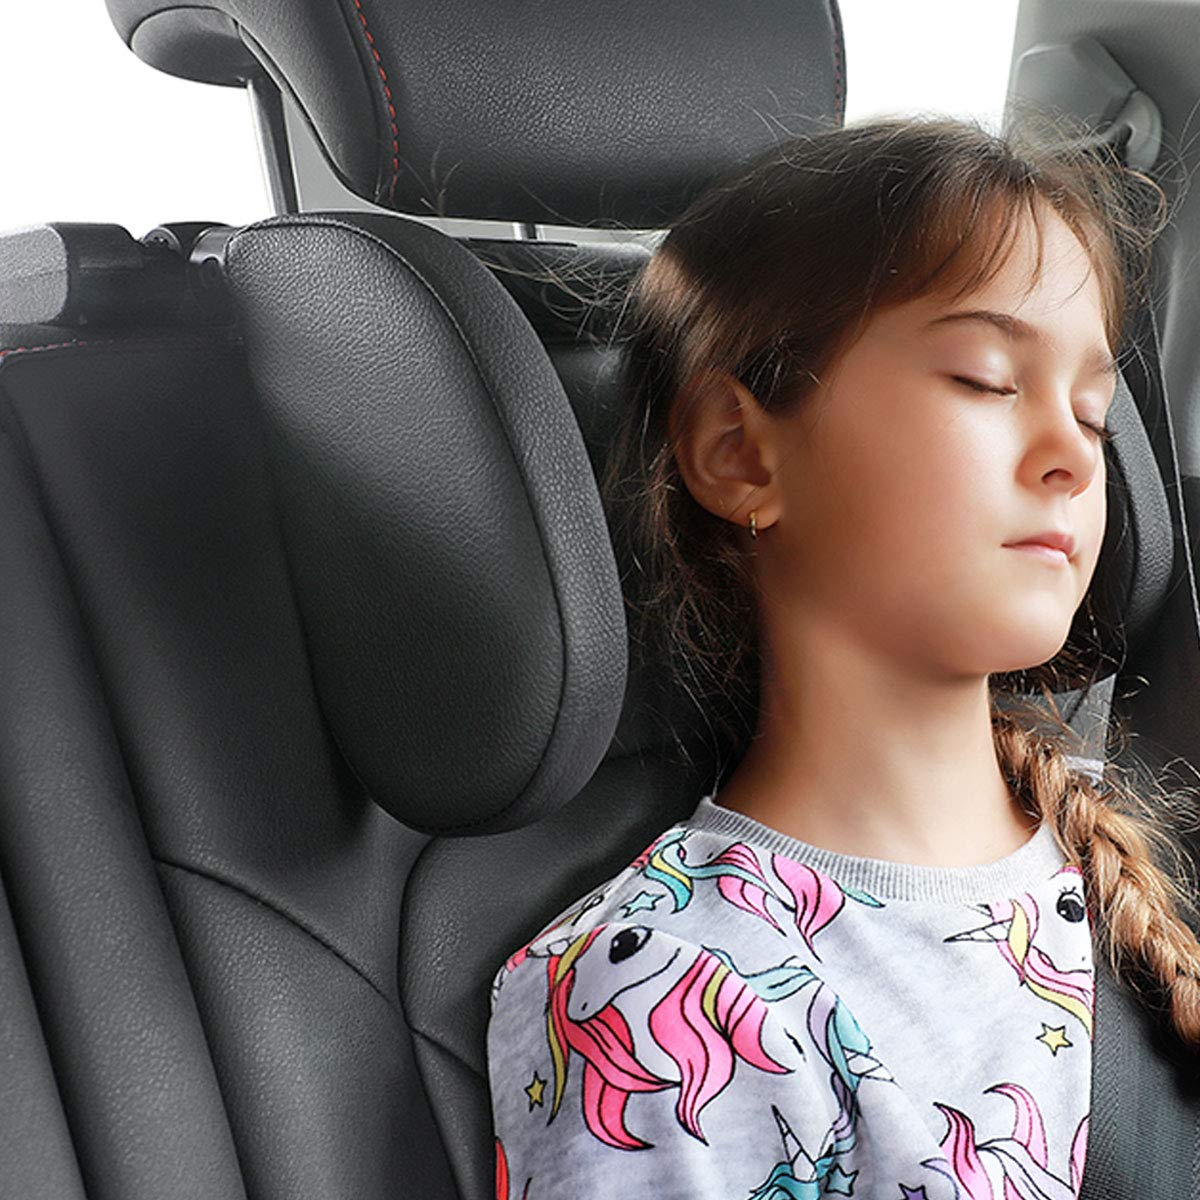 TEEPIRE Car Seat Headrest Pillow, Headrest for car, Head Neck Support Detachable,Premium seat held Pillow, 180 Degree Adjustable Both Sides Travel Sleeping Cushion for Kids Adults (Black) by TEEPIRE